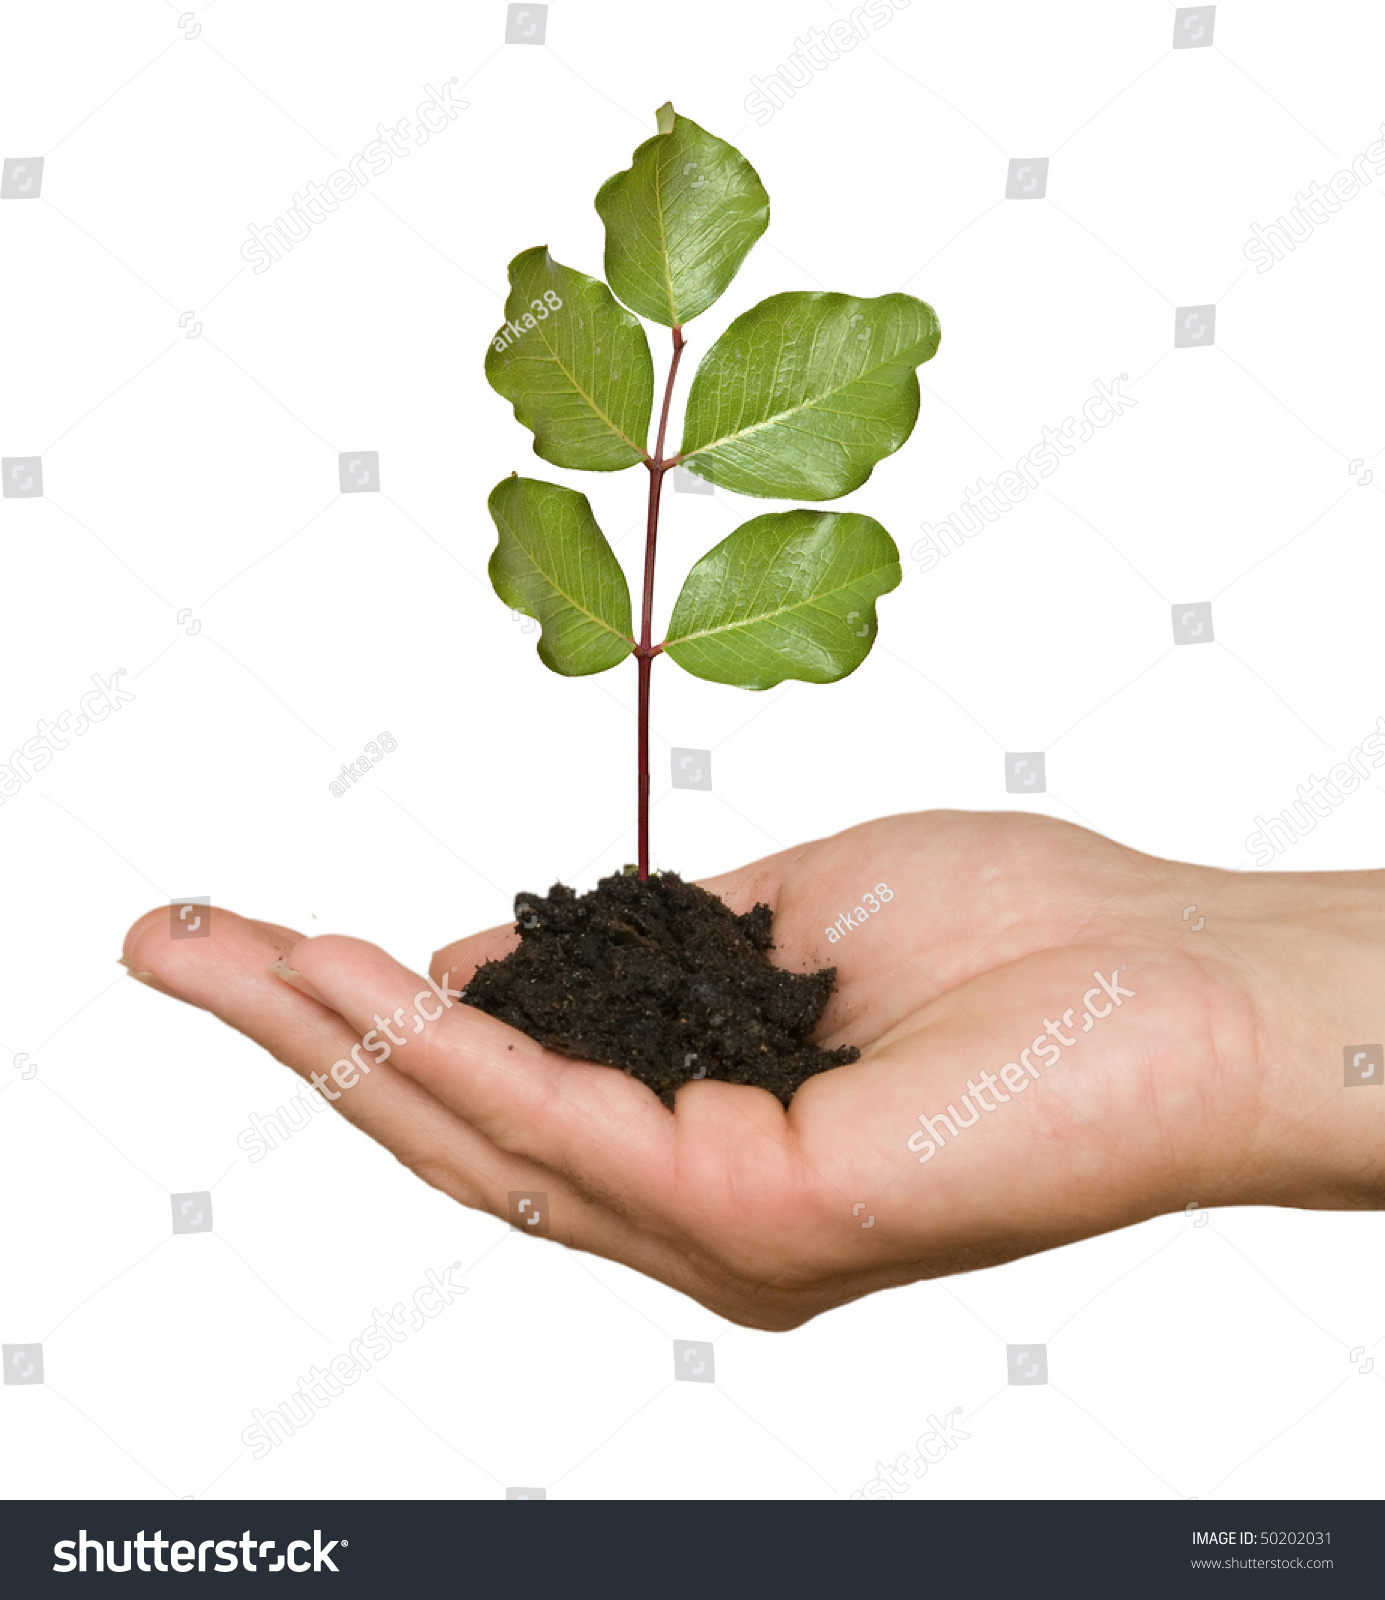 Tree seedling hand symbol nature protection stock photo 50202031 tree seedling in hand as a symbol of nature protection biocorpaavc